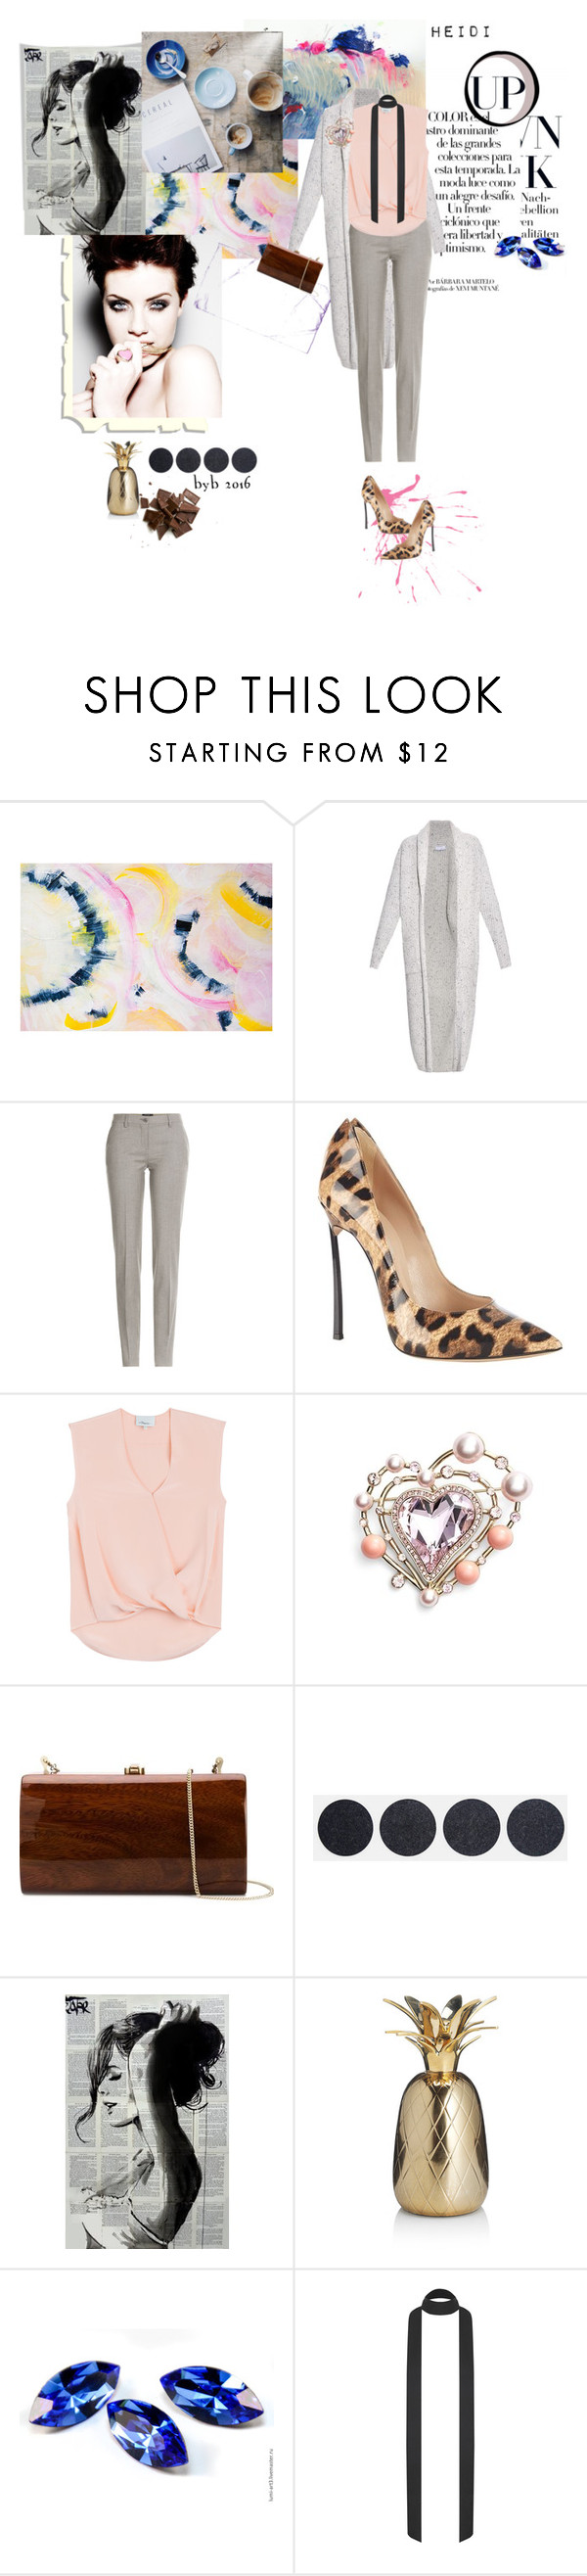 """Heidi"" by hannover ❤ liked on Polyvore featuring Arco, Raey, Etro, Casadei, 3.1 Phillip Lim, St. John, Rocio, women's clothing, women and female"